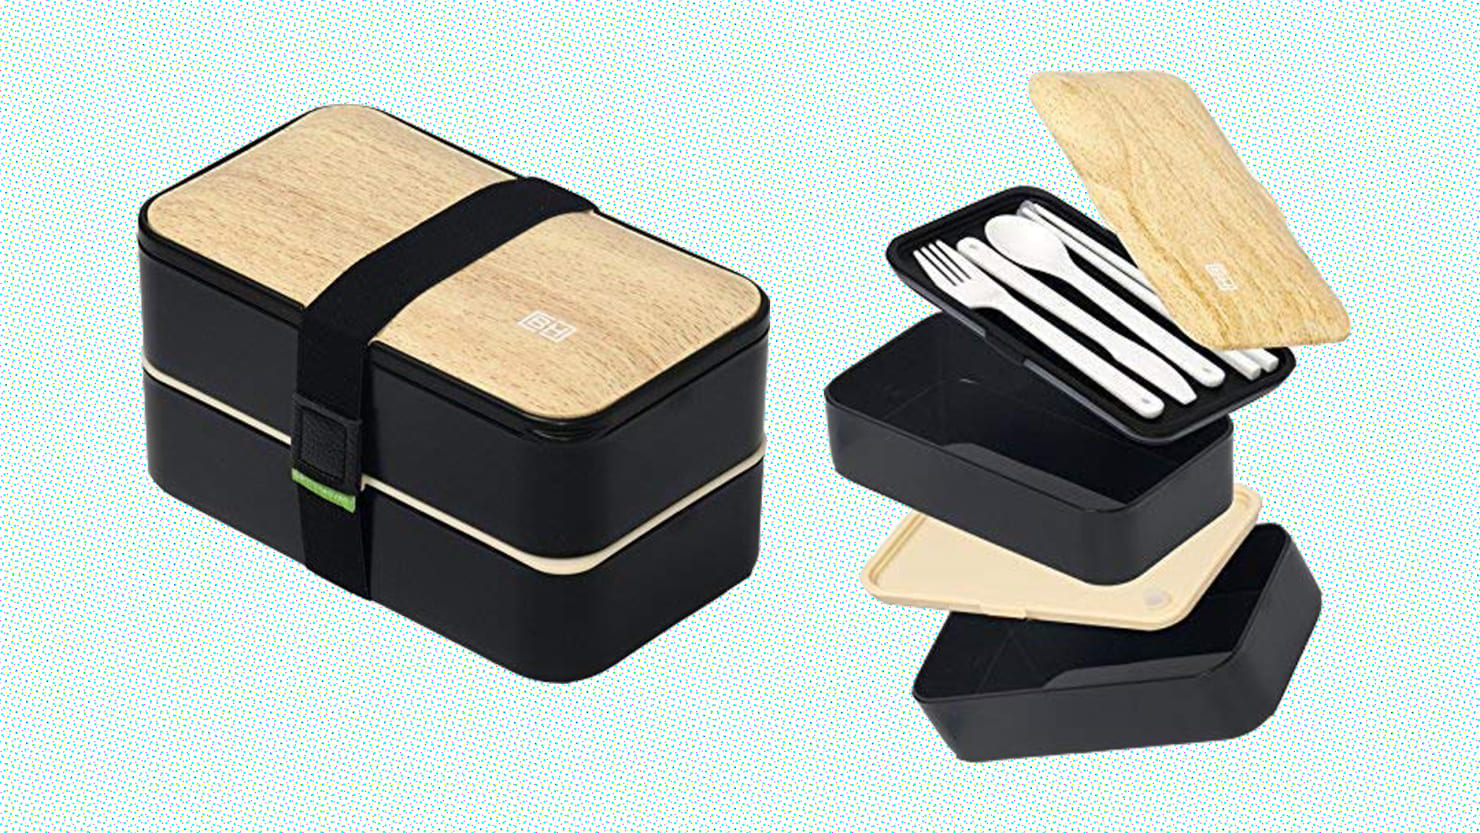 Pack Lunch for Work More Efficiently With A Bento Box